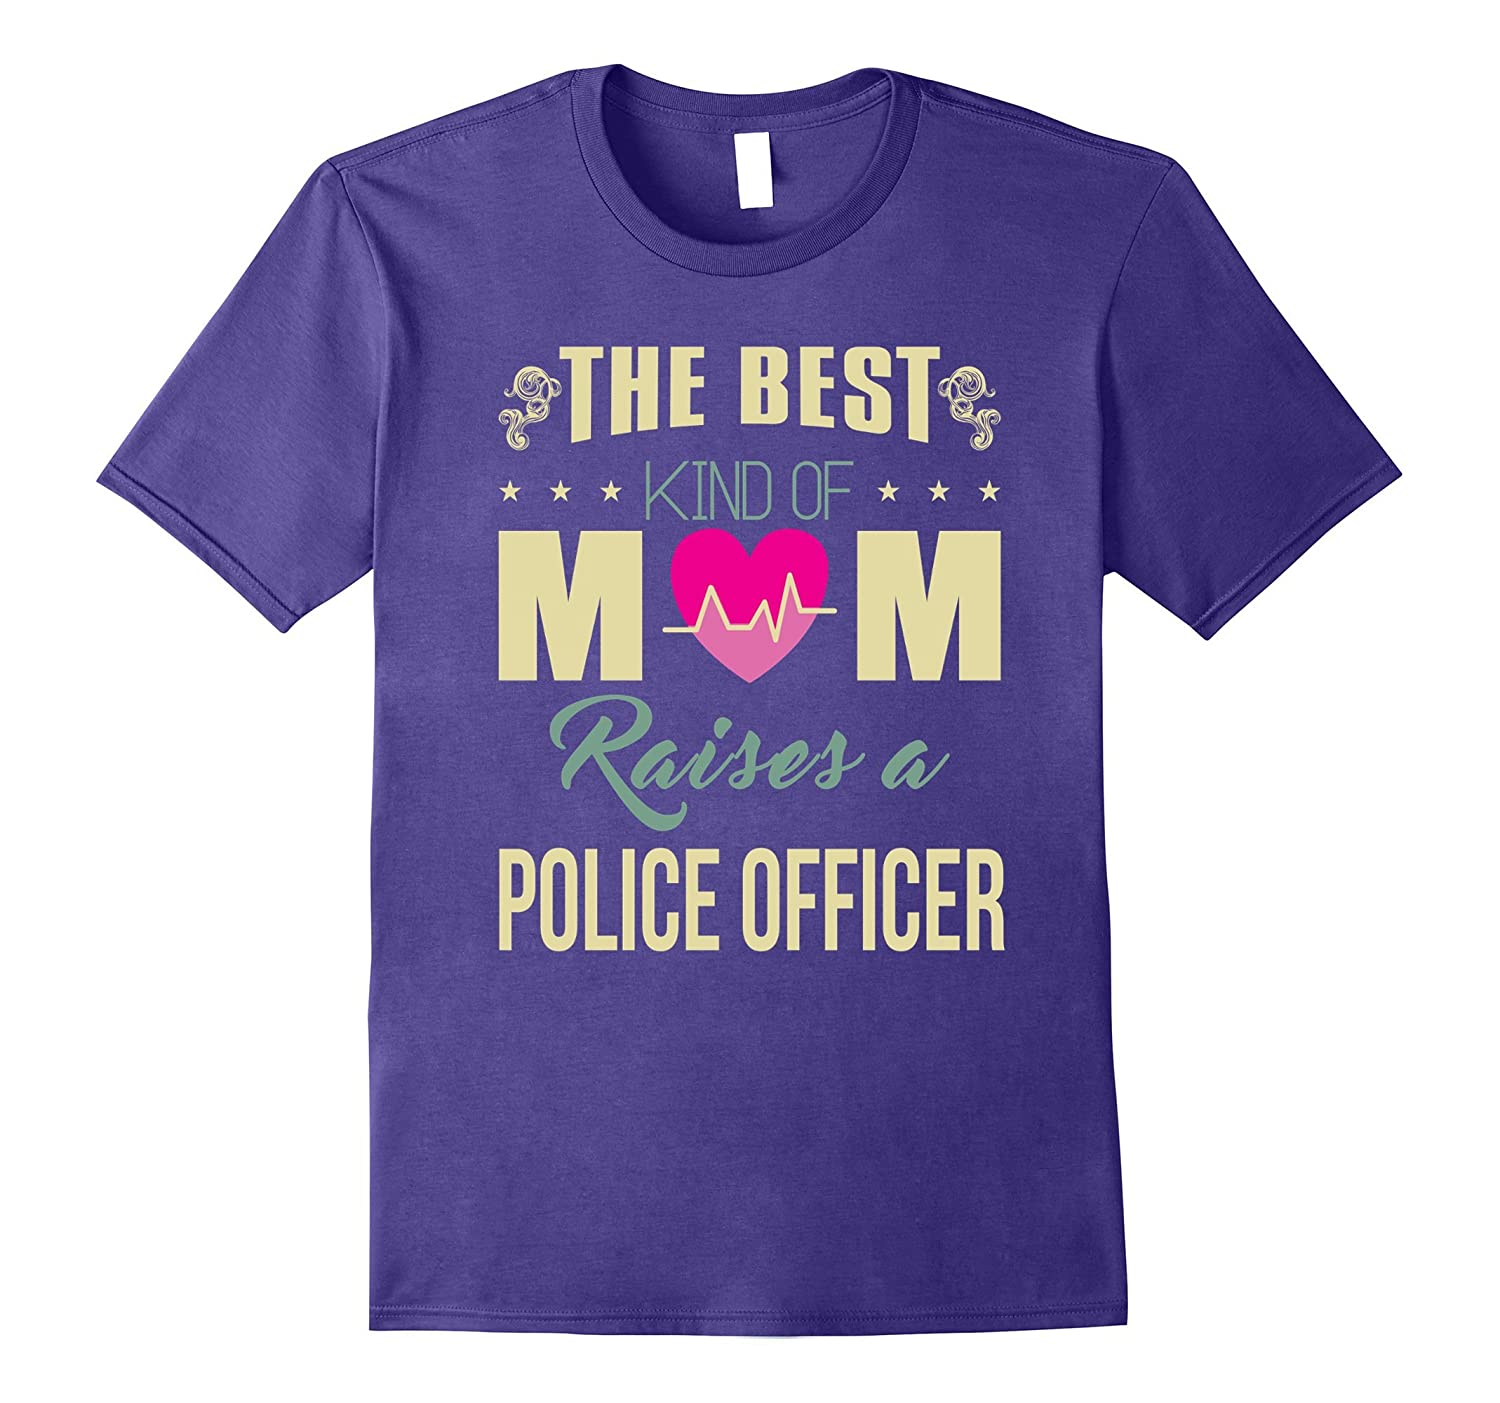 The Best Kind Of Mom Raises A Police Officer T-shirt-Vaci